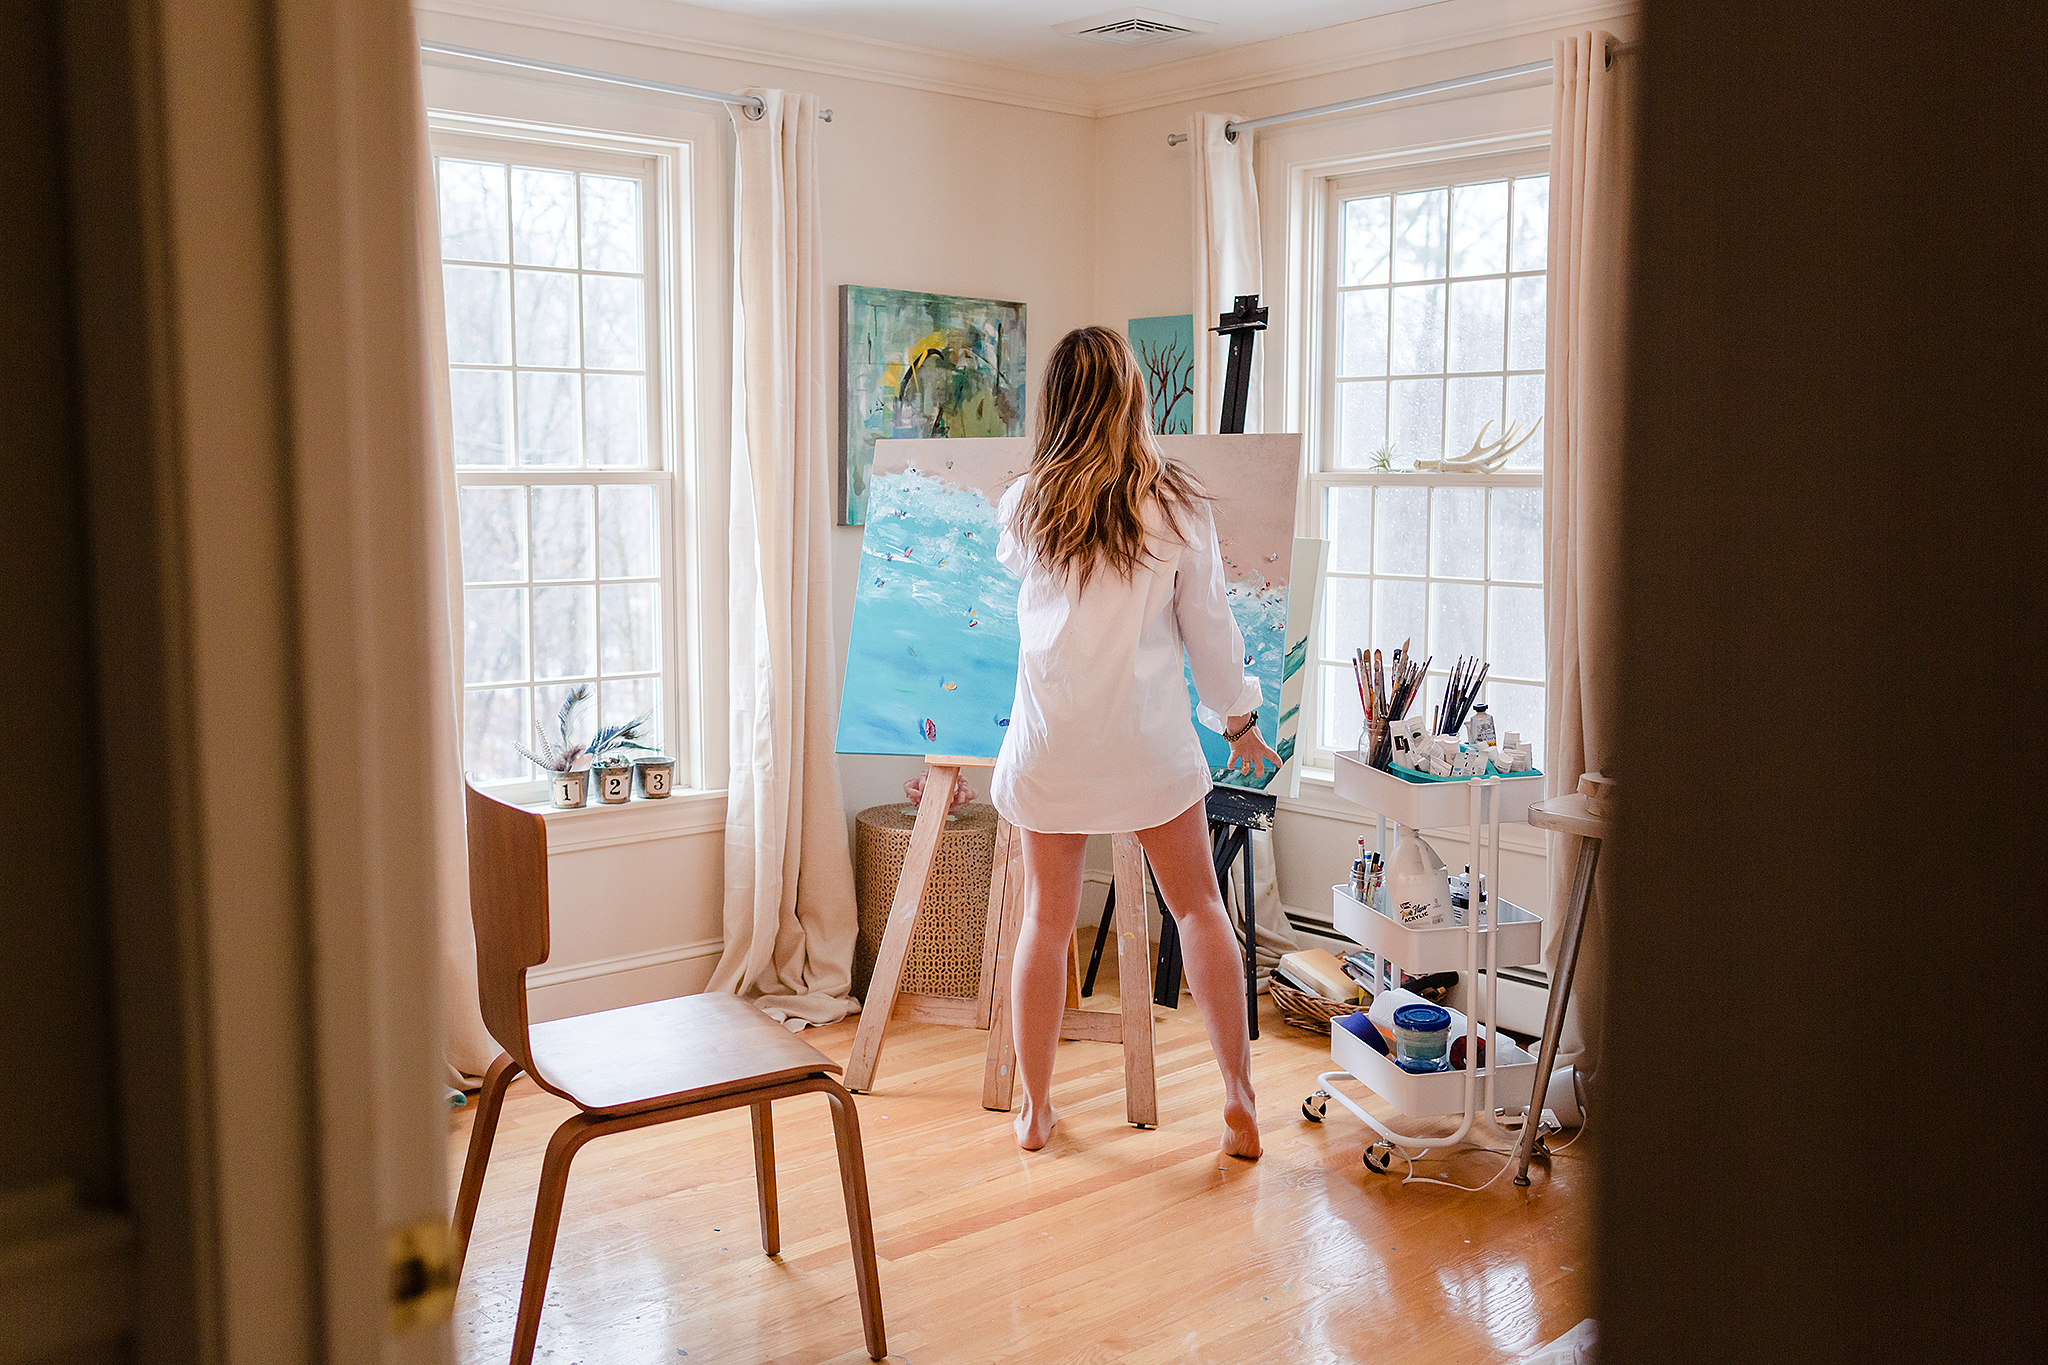 woman standing in room painting canvas